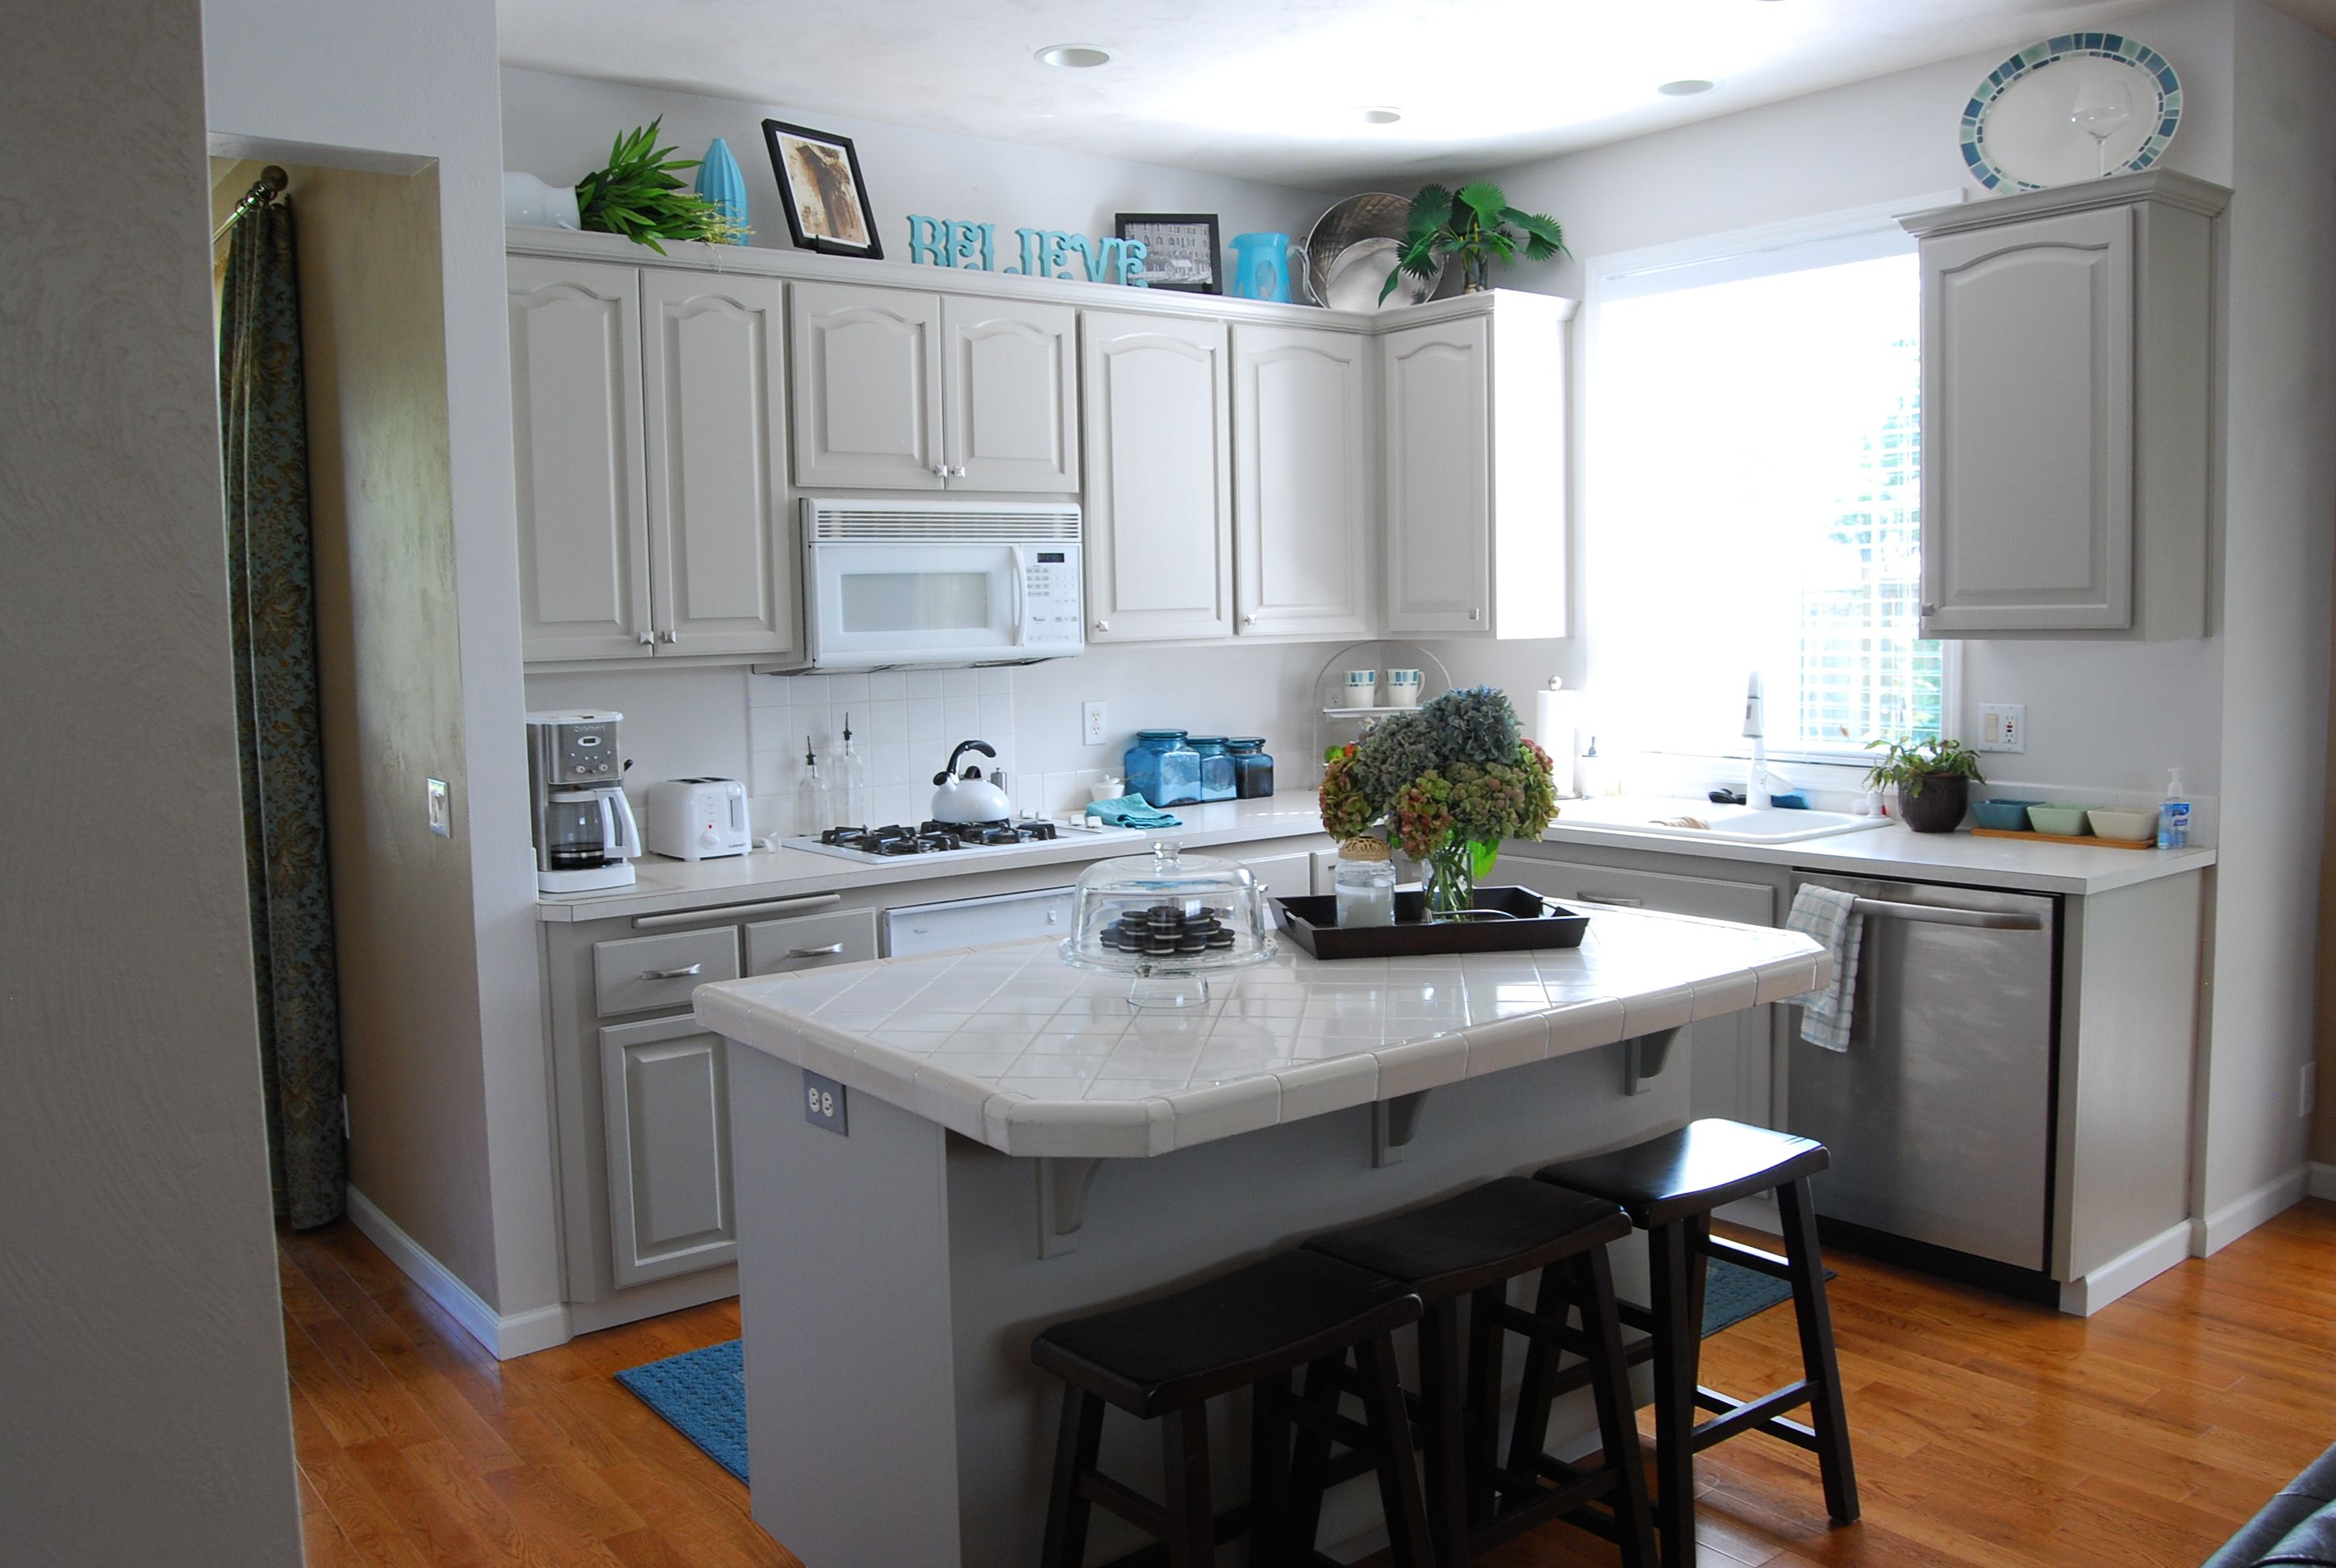 Grey Cupboards Kitchen View In Gallery With Gray Cabinets And Yellow Backsplash Design Chr